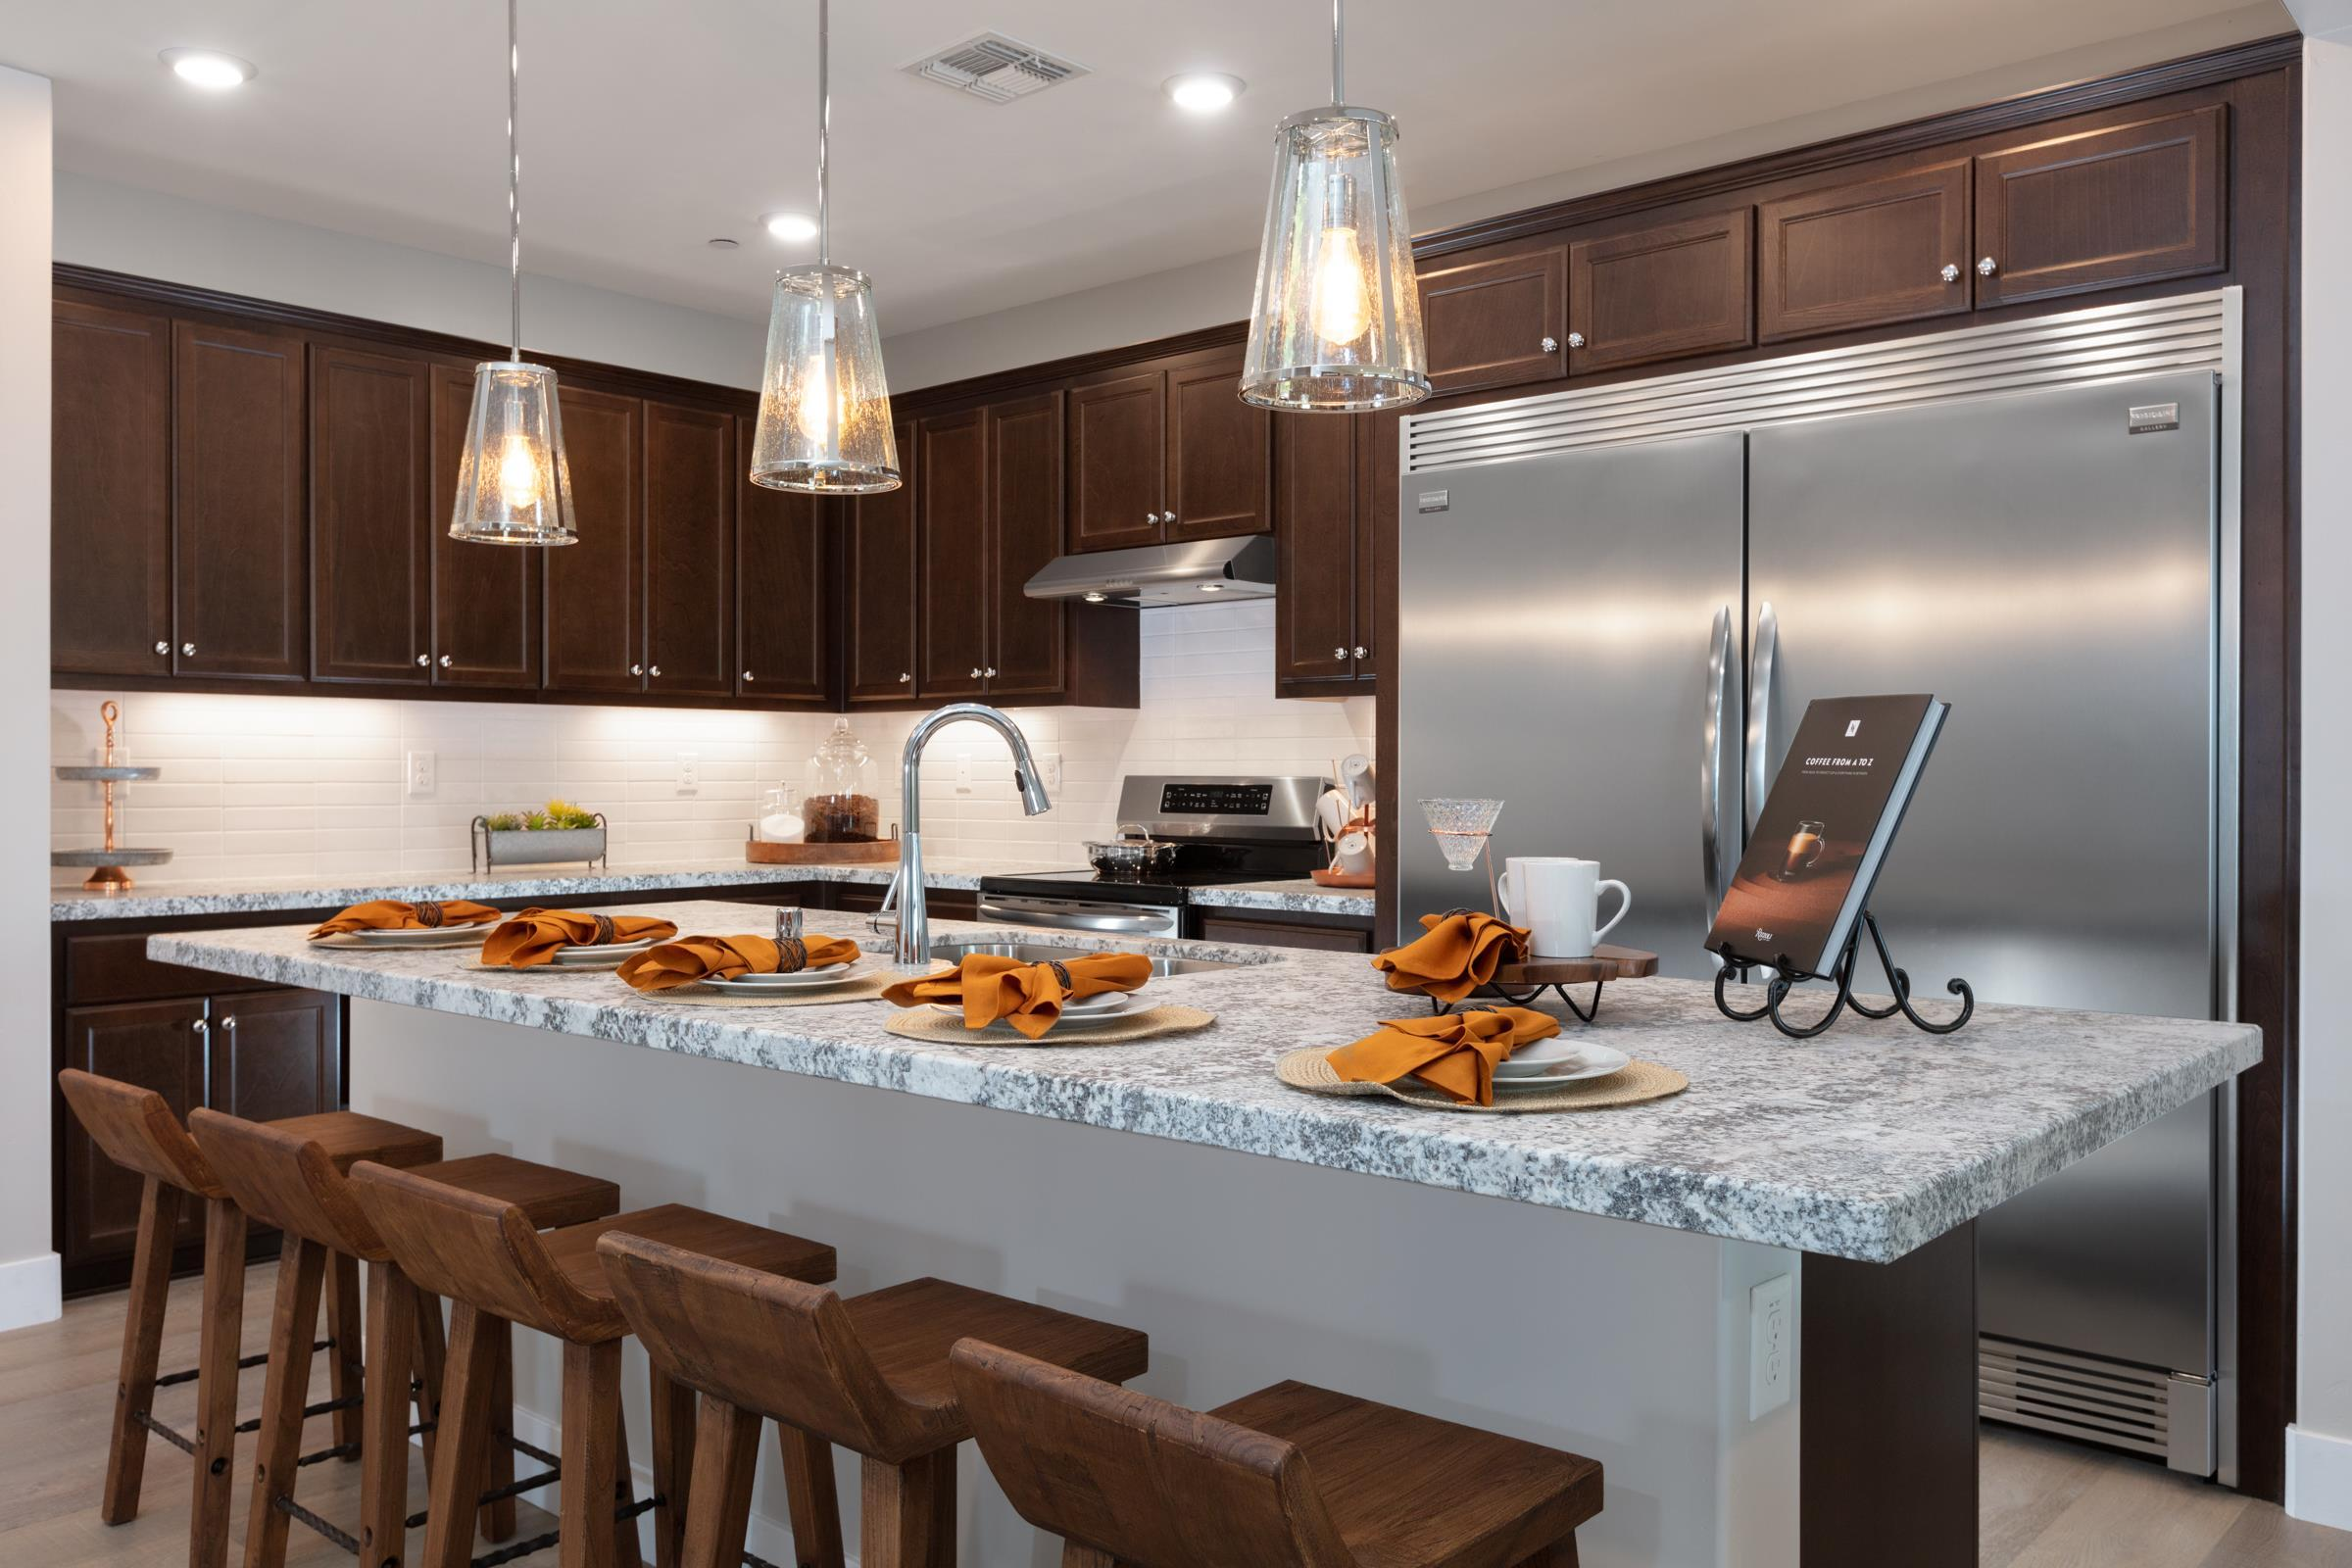 Kitchen featured in the Plan 2 By Anthem United Homes Inc in Stockton-Lodi, CA